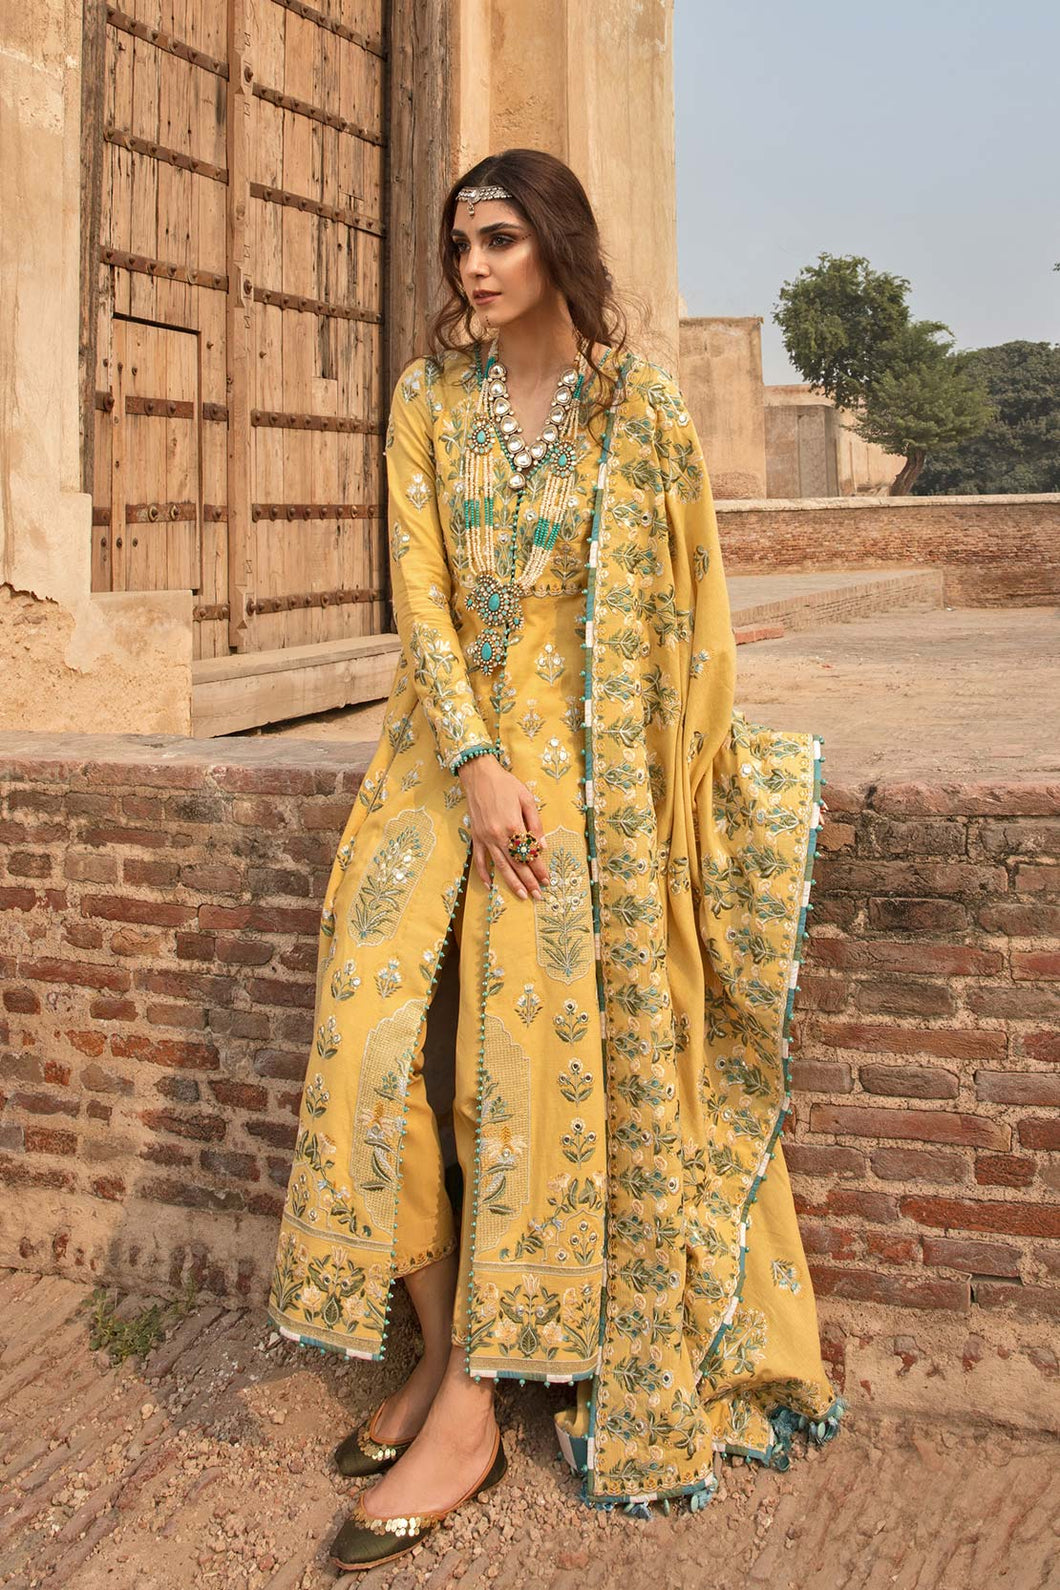 Buy Crimson Winter Collection 2020 x Saira Shakira 4B in the UK and USA -SALE ! Shop Crimson PK Pakistani Designer Clothing in the UK for winter wedding and party. Browse our latest Crimson Luxury Dresses in Small, Medium & Large Sizes for Indian Pakistani Women. Shop Online Readymade Salwar Suits at our Boutique.